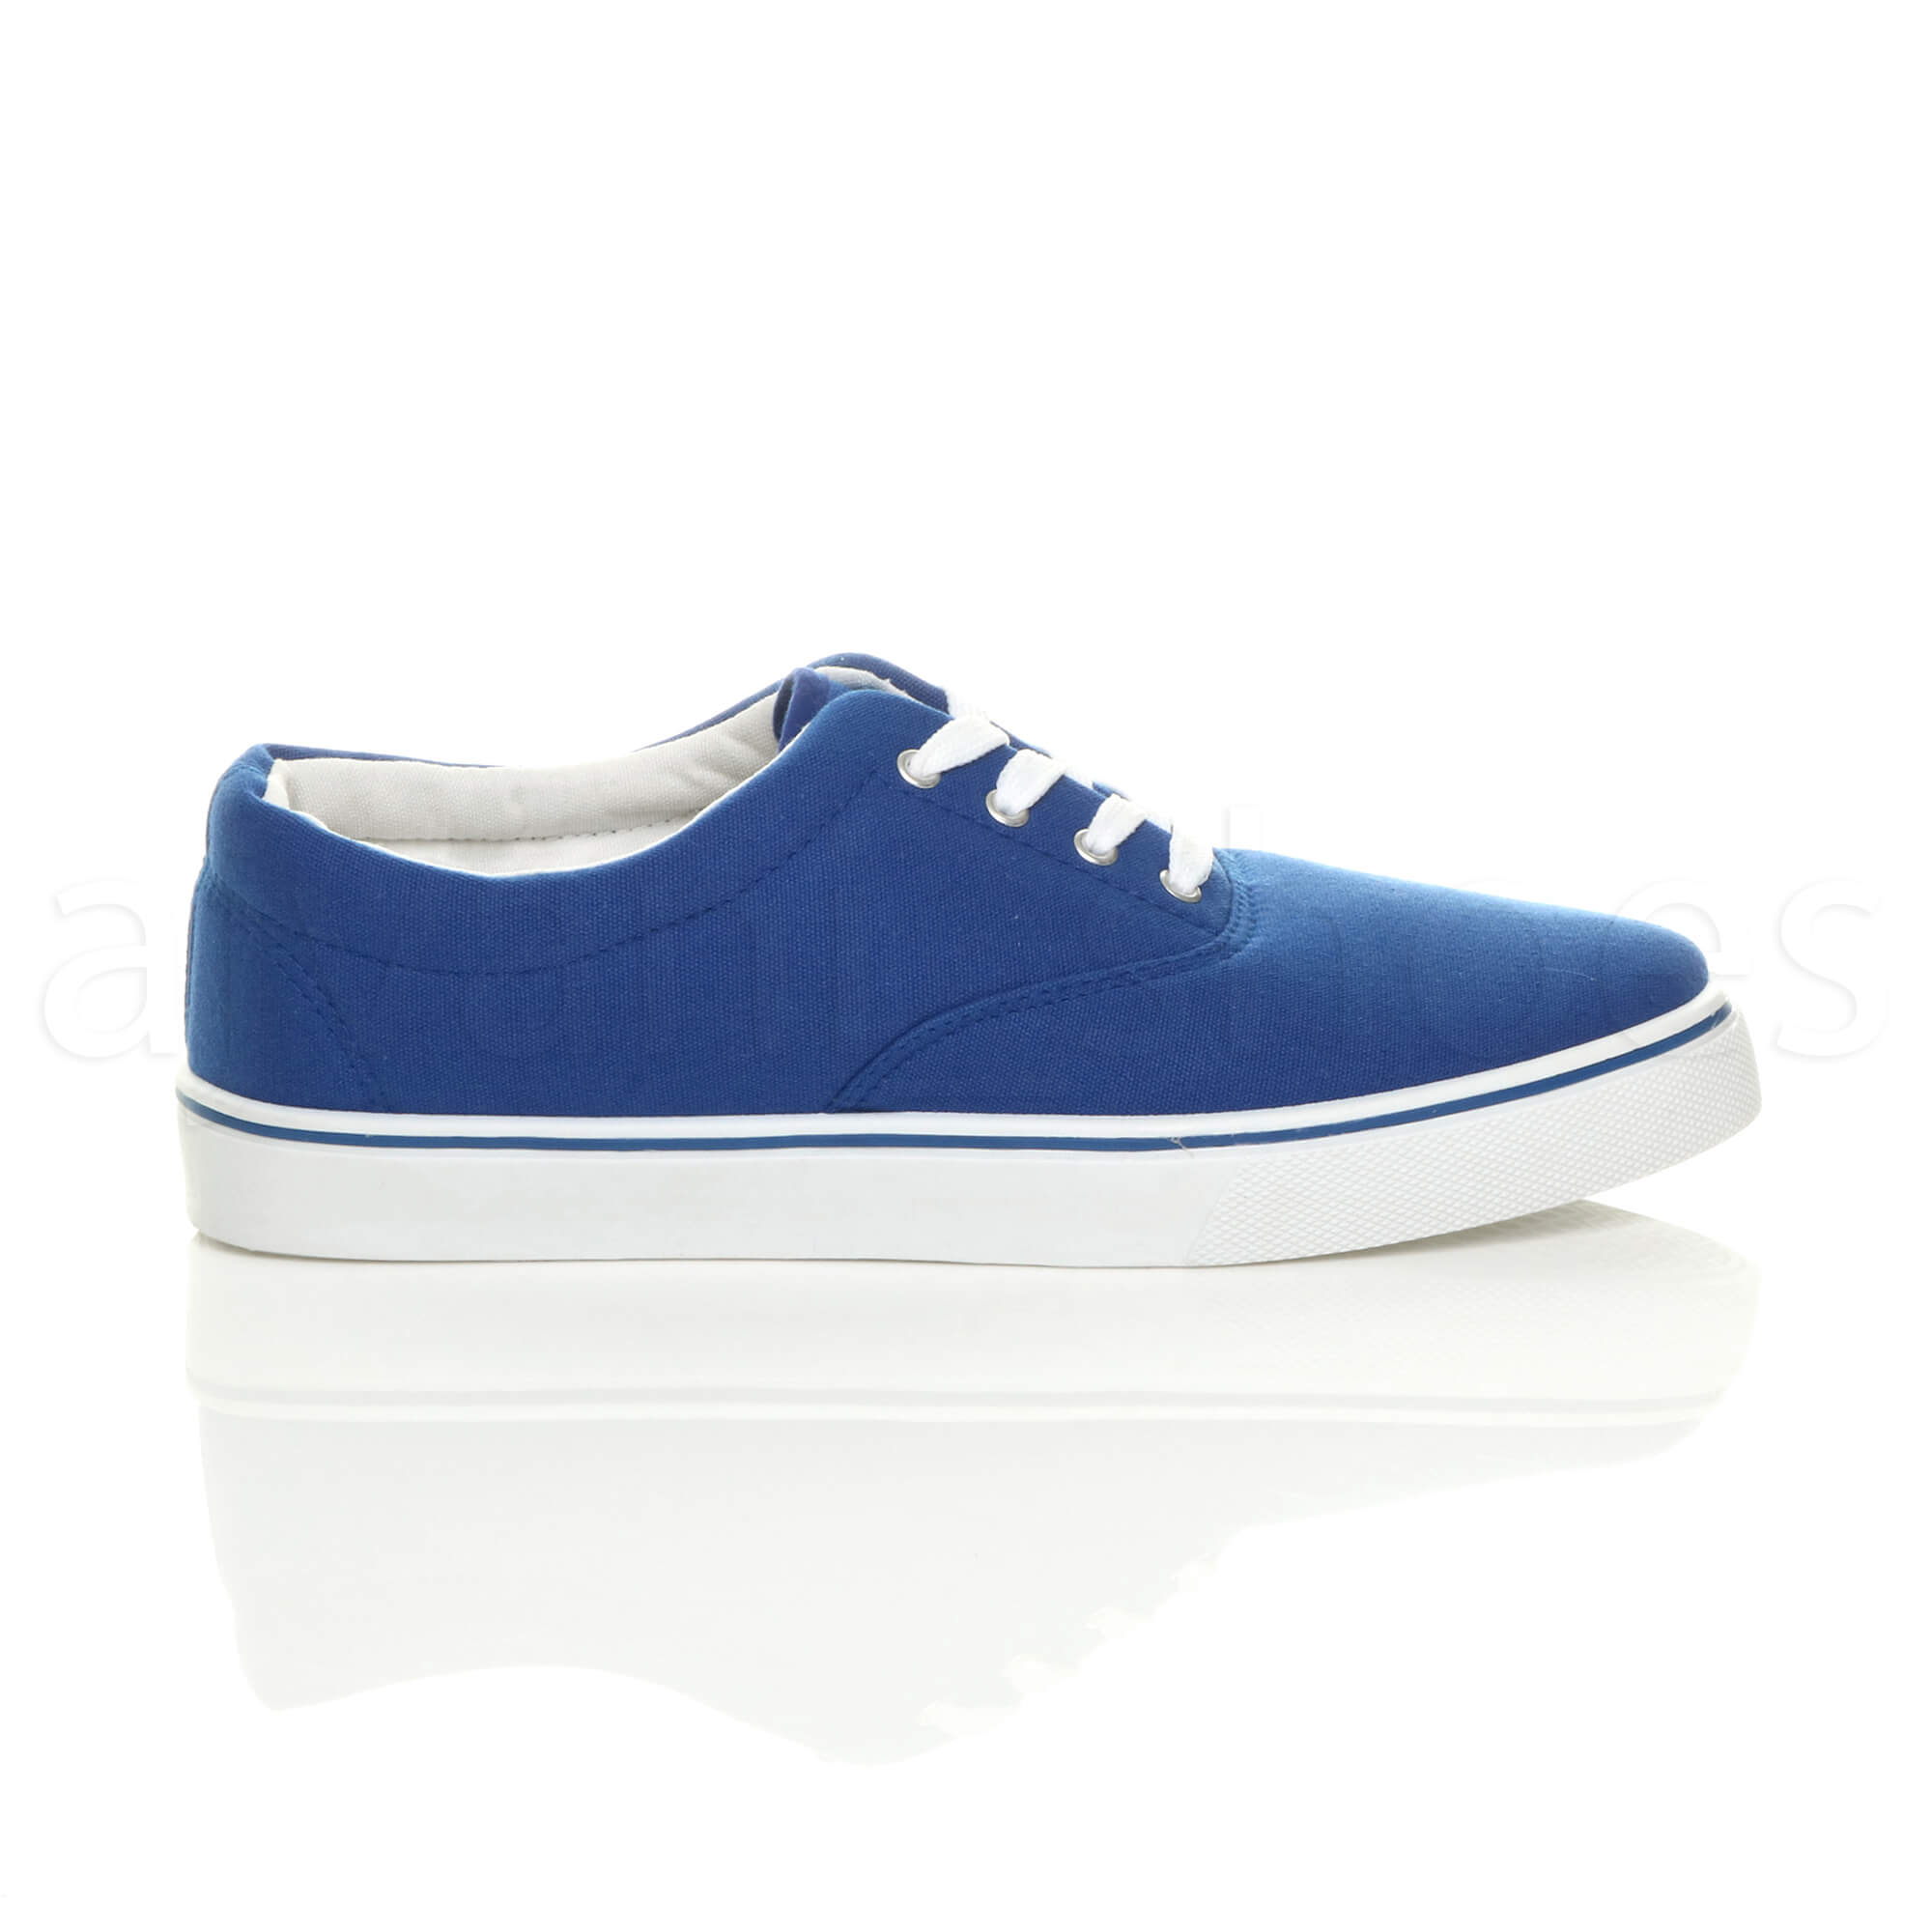 MENS-CANVAS-CASUAL-TRAINERS-PLIMSOLES-PLIMSOLLS-SHOES-LACE-UP-PUMPS-SIZE thumbnail 23